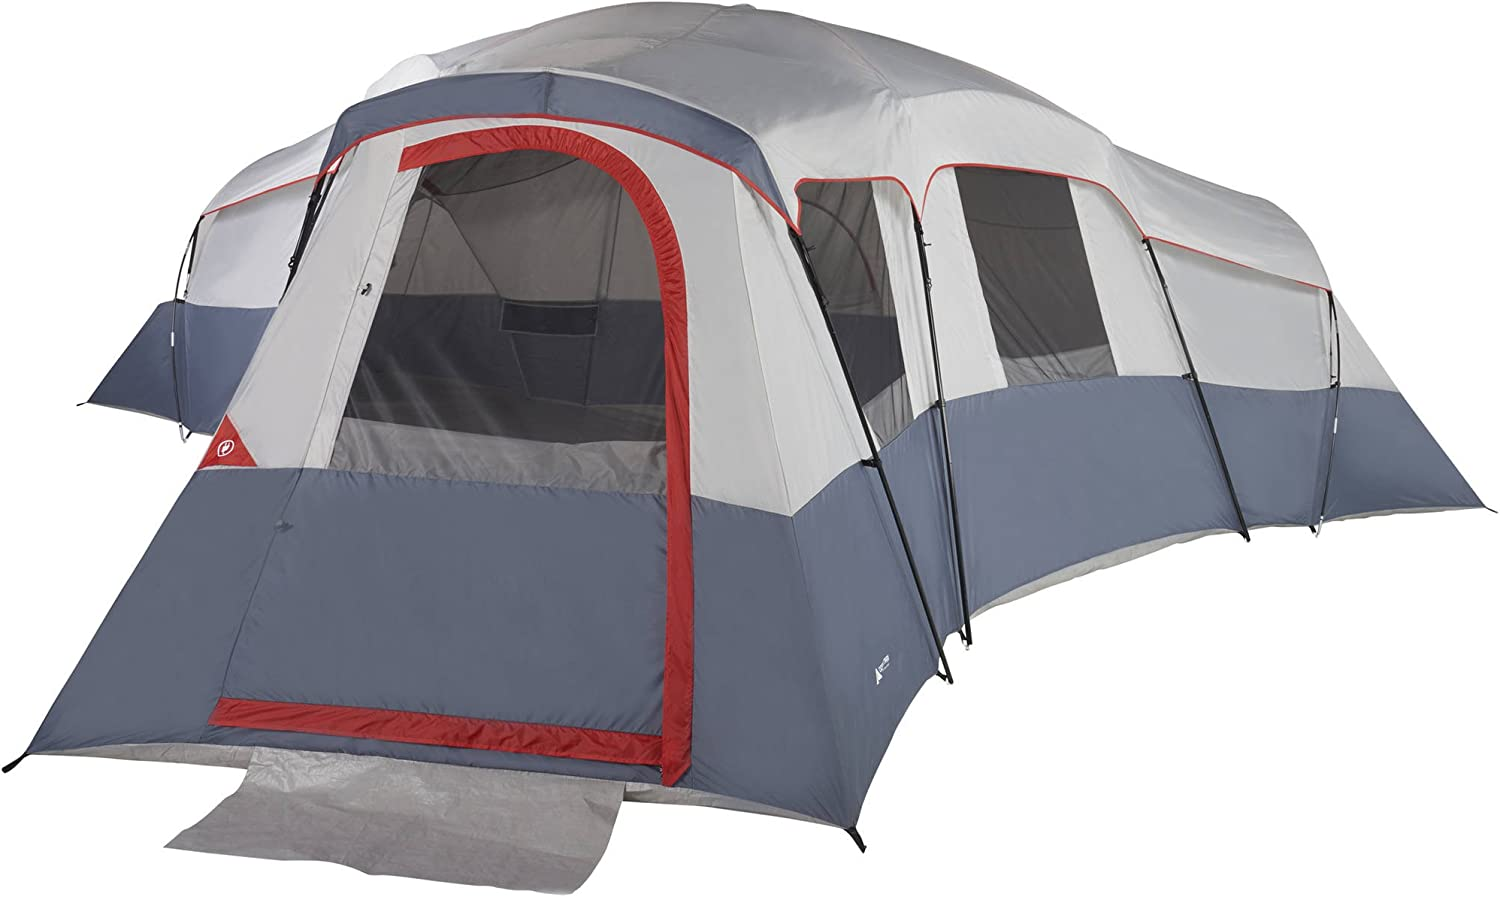 This is a photo of a tent, D-shaped screen door facing the front.